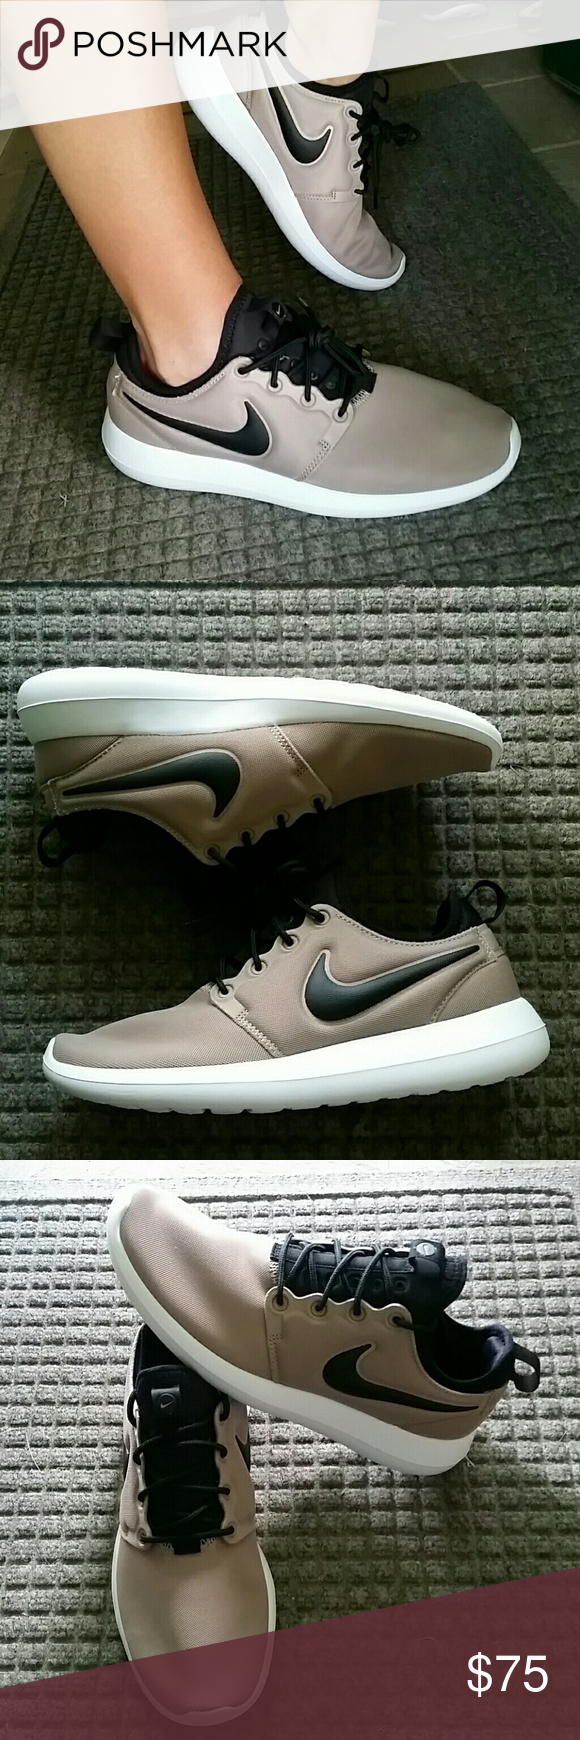 Women's Nike Roshe Two in Khaki Brand new women's size 8 Nike Roshe Two.  These